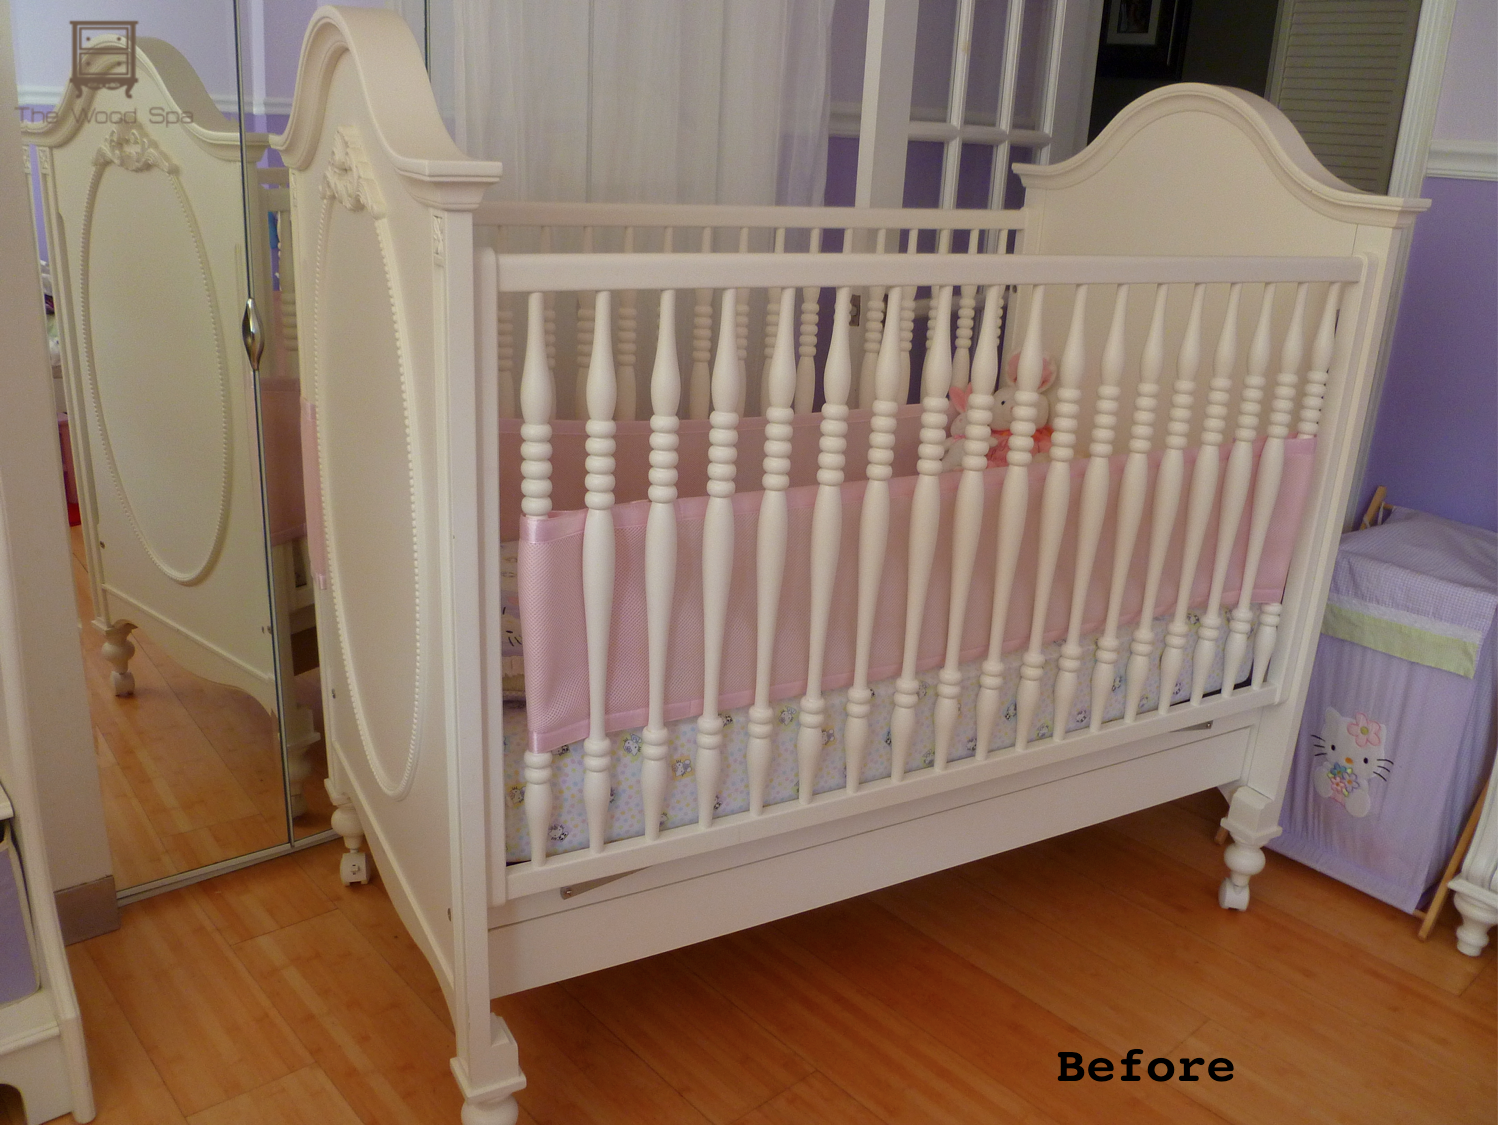 Gold crib for sale - Her Baby S Room Will Be White And Coral She Wanted Me To Find A Match For Pottery Barn Simply White And I Was Lucky Enough To Find It In 5 Minutes